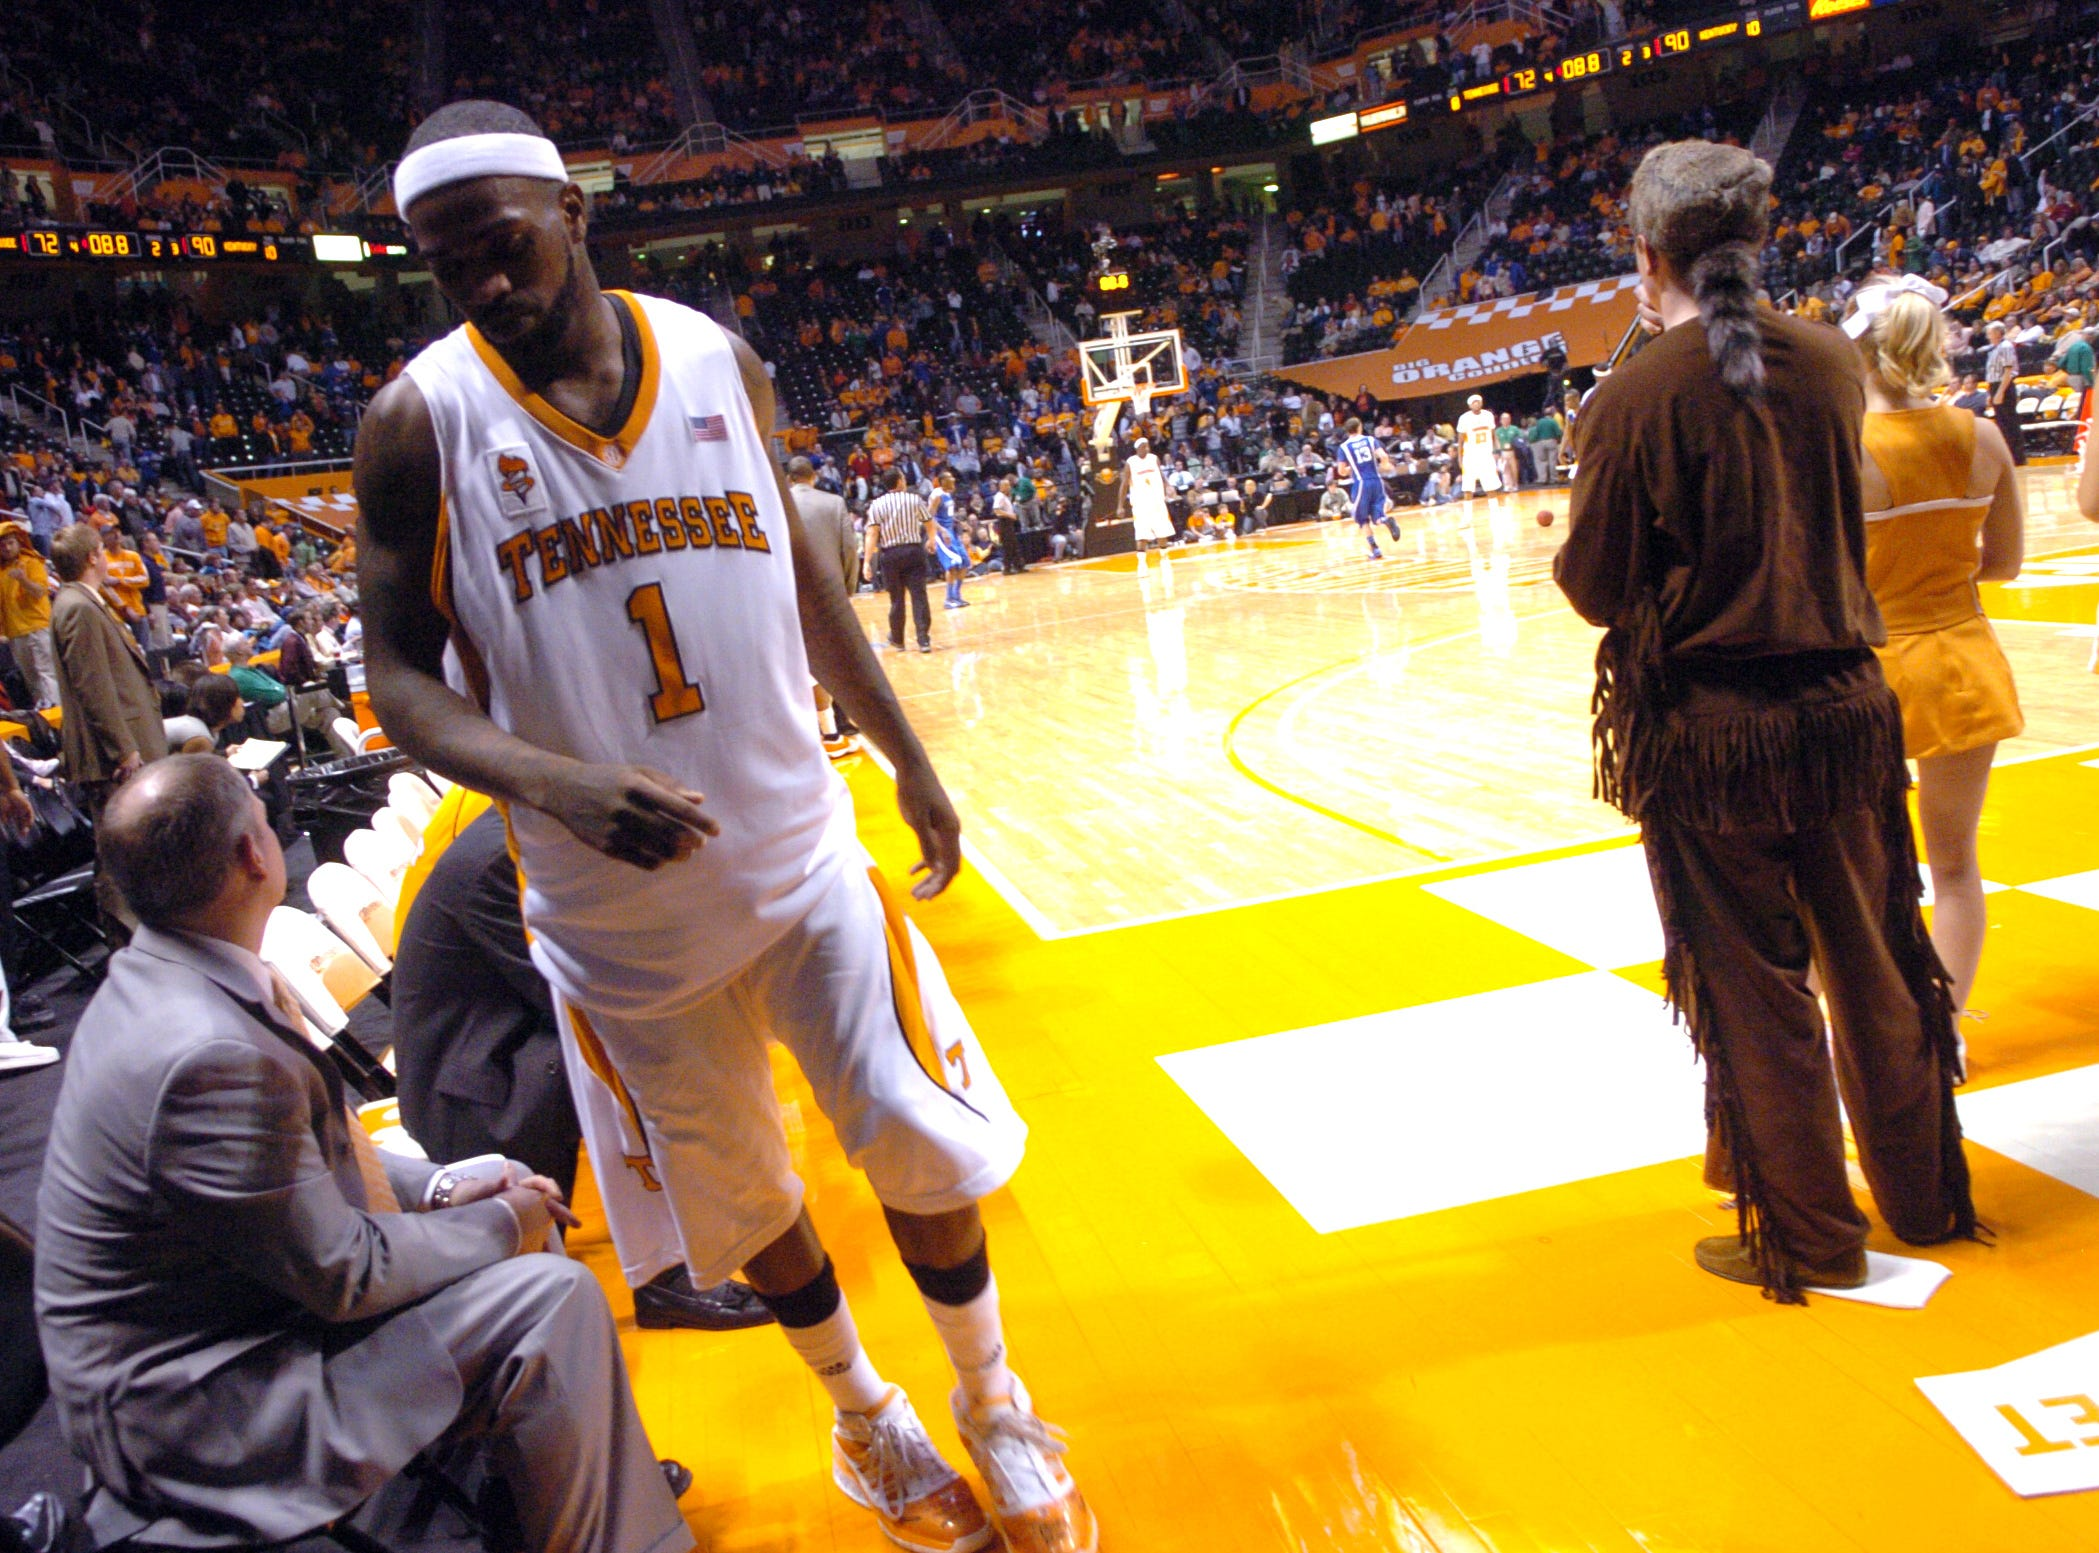 Tennessee's Tyler Smith leaves the court with seconds to go against Kentucky at Thompson Boling Arena in January 2009. Kentucky defeated Tennessee 90-72 with Jodie Meeks scoring 54 points.